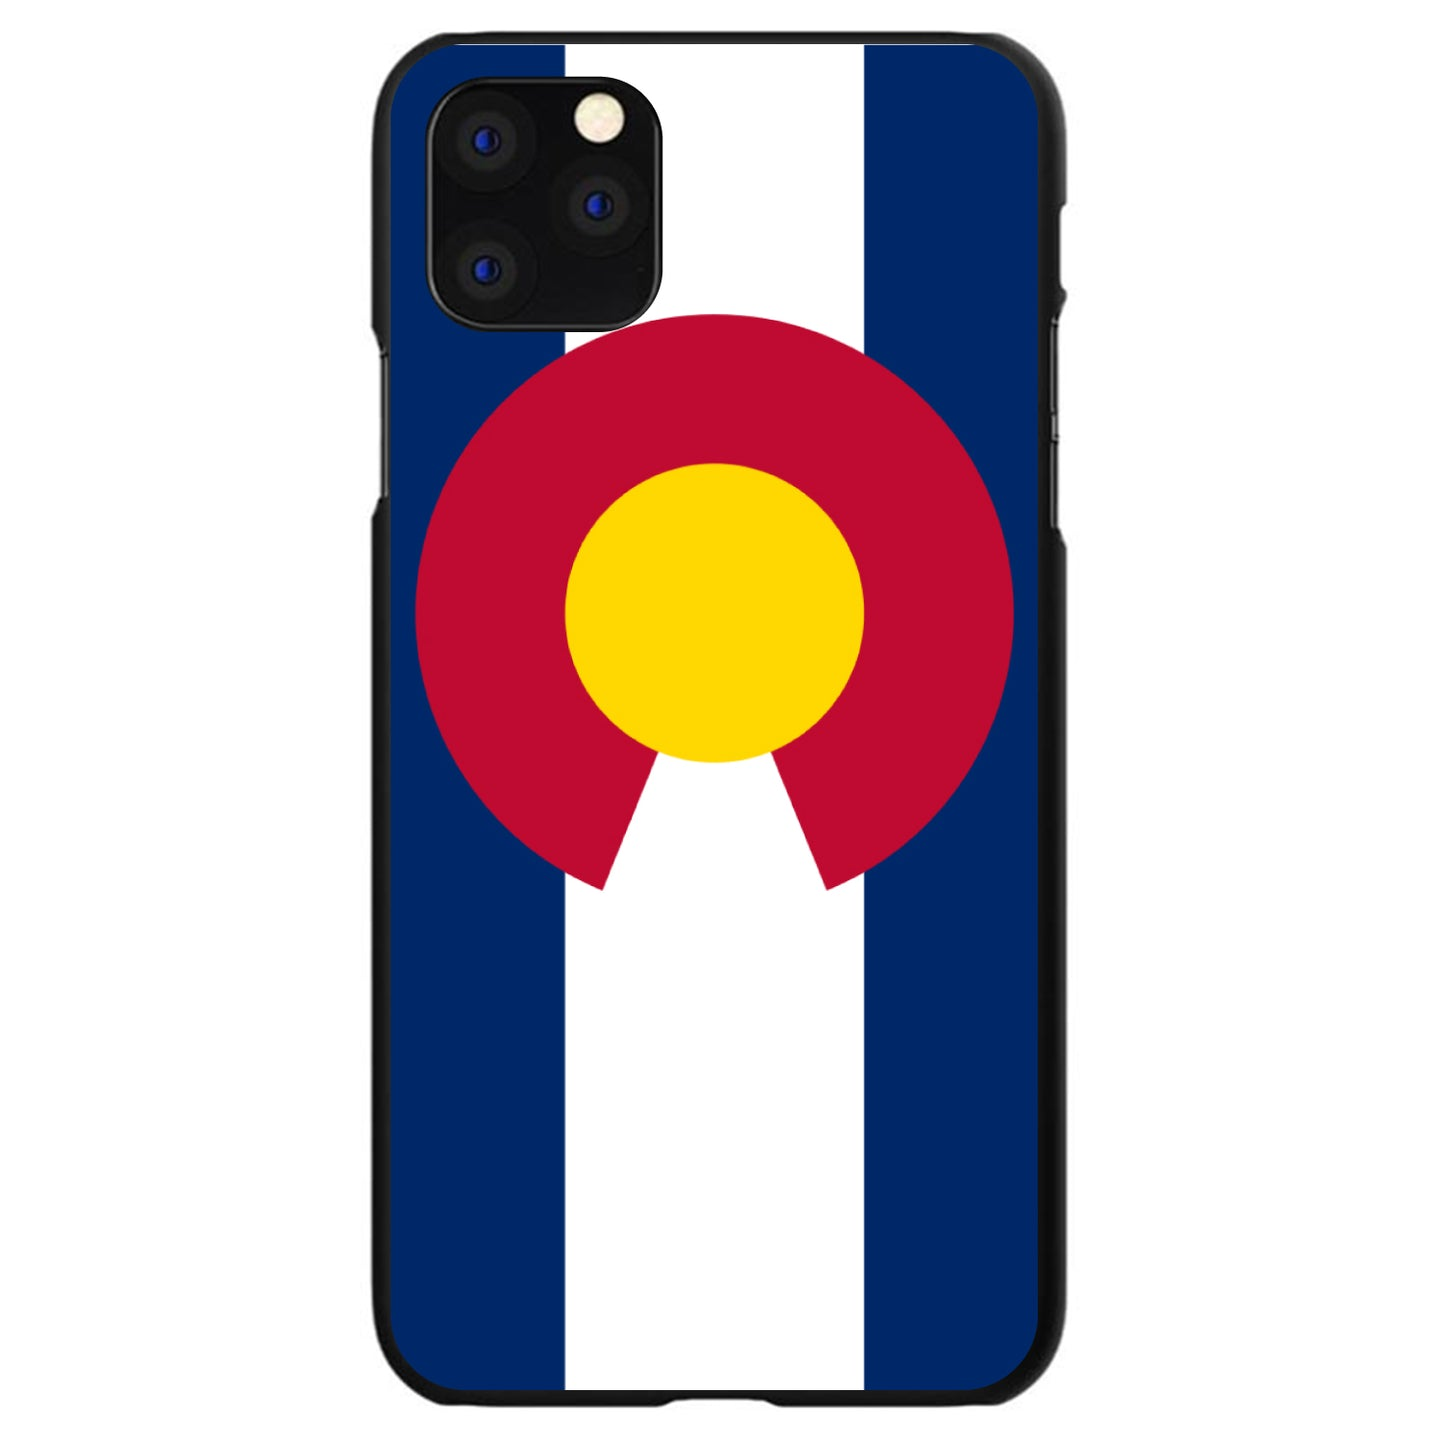 DistinctInk® Hard Plastic Snap-On Case for Apple iPhone - Colorado State Flag